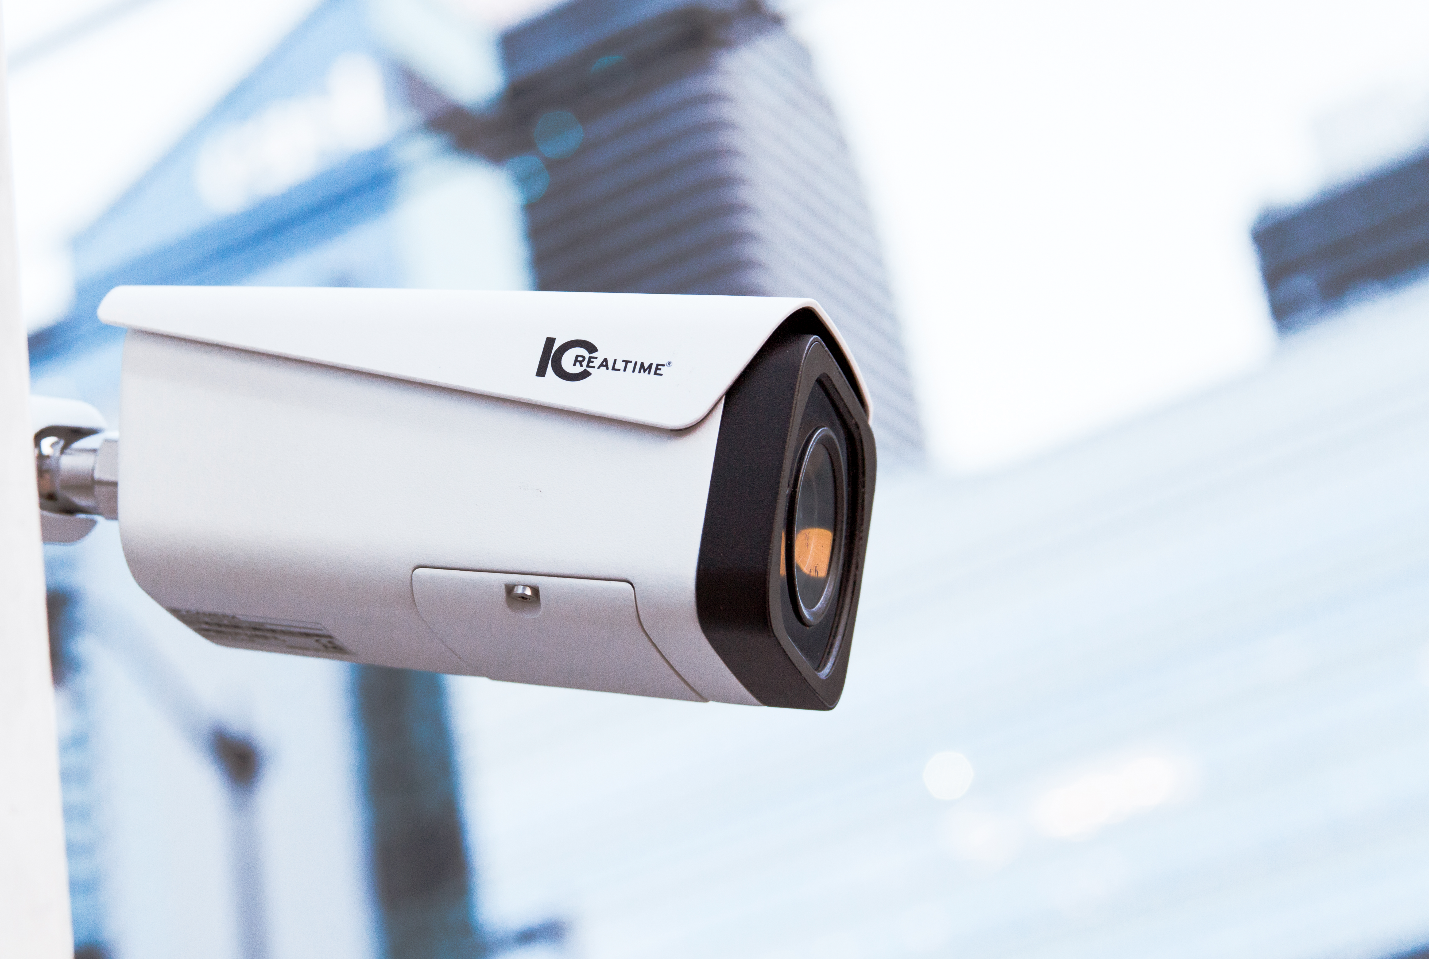 Is Your Business Protected? Enhance Security With Smart Surveillance.